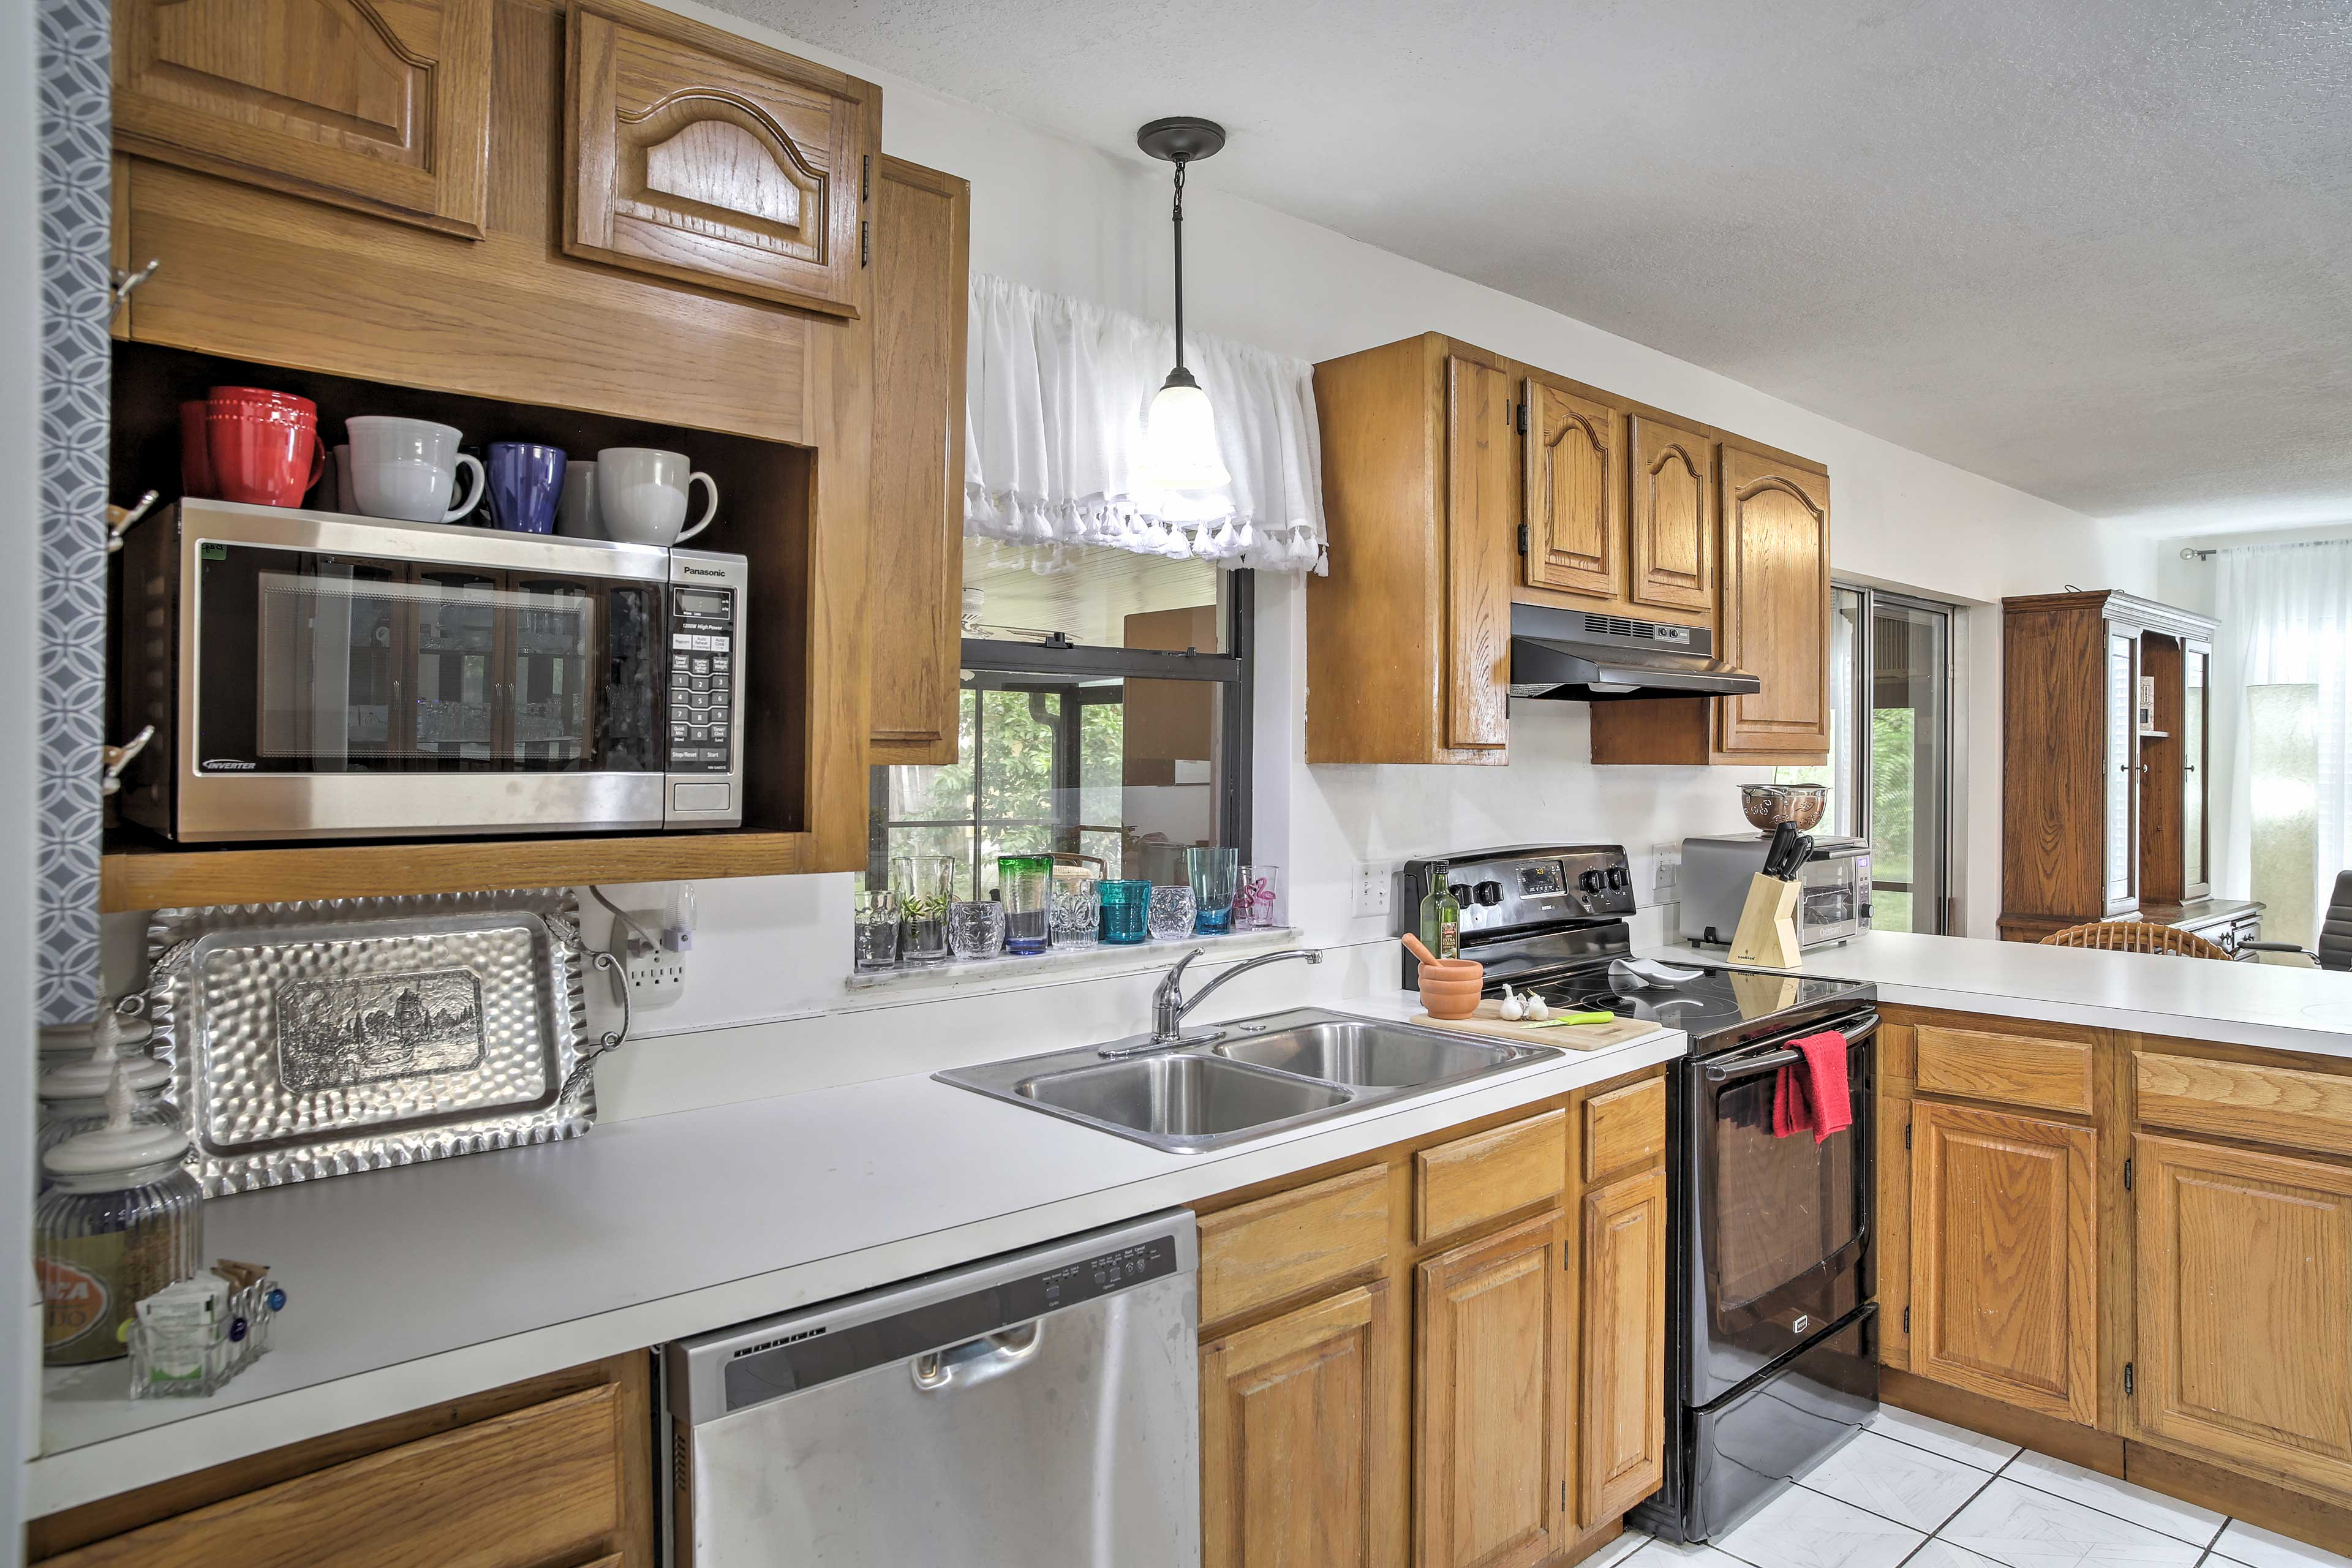 Save on the dinner tab - the fully equipped kitchen makes cooking an easy task.